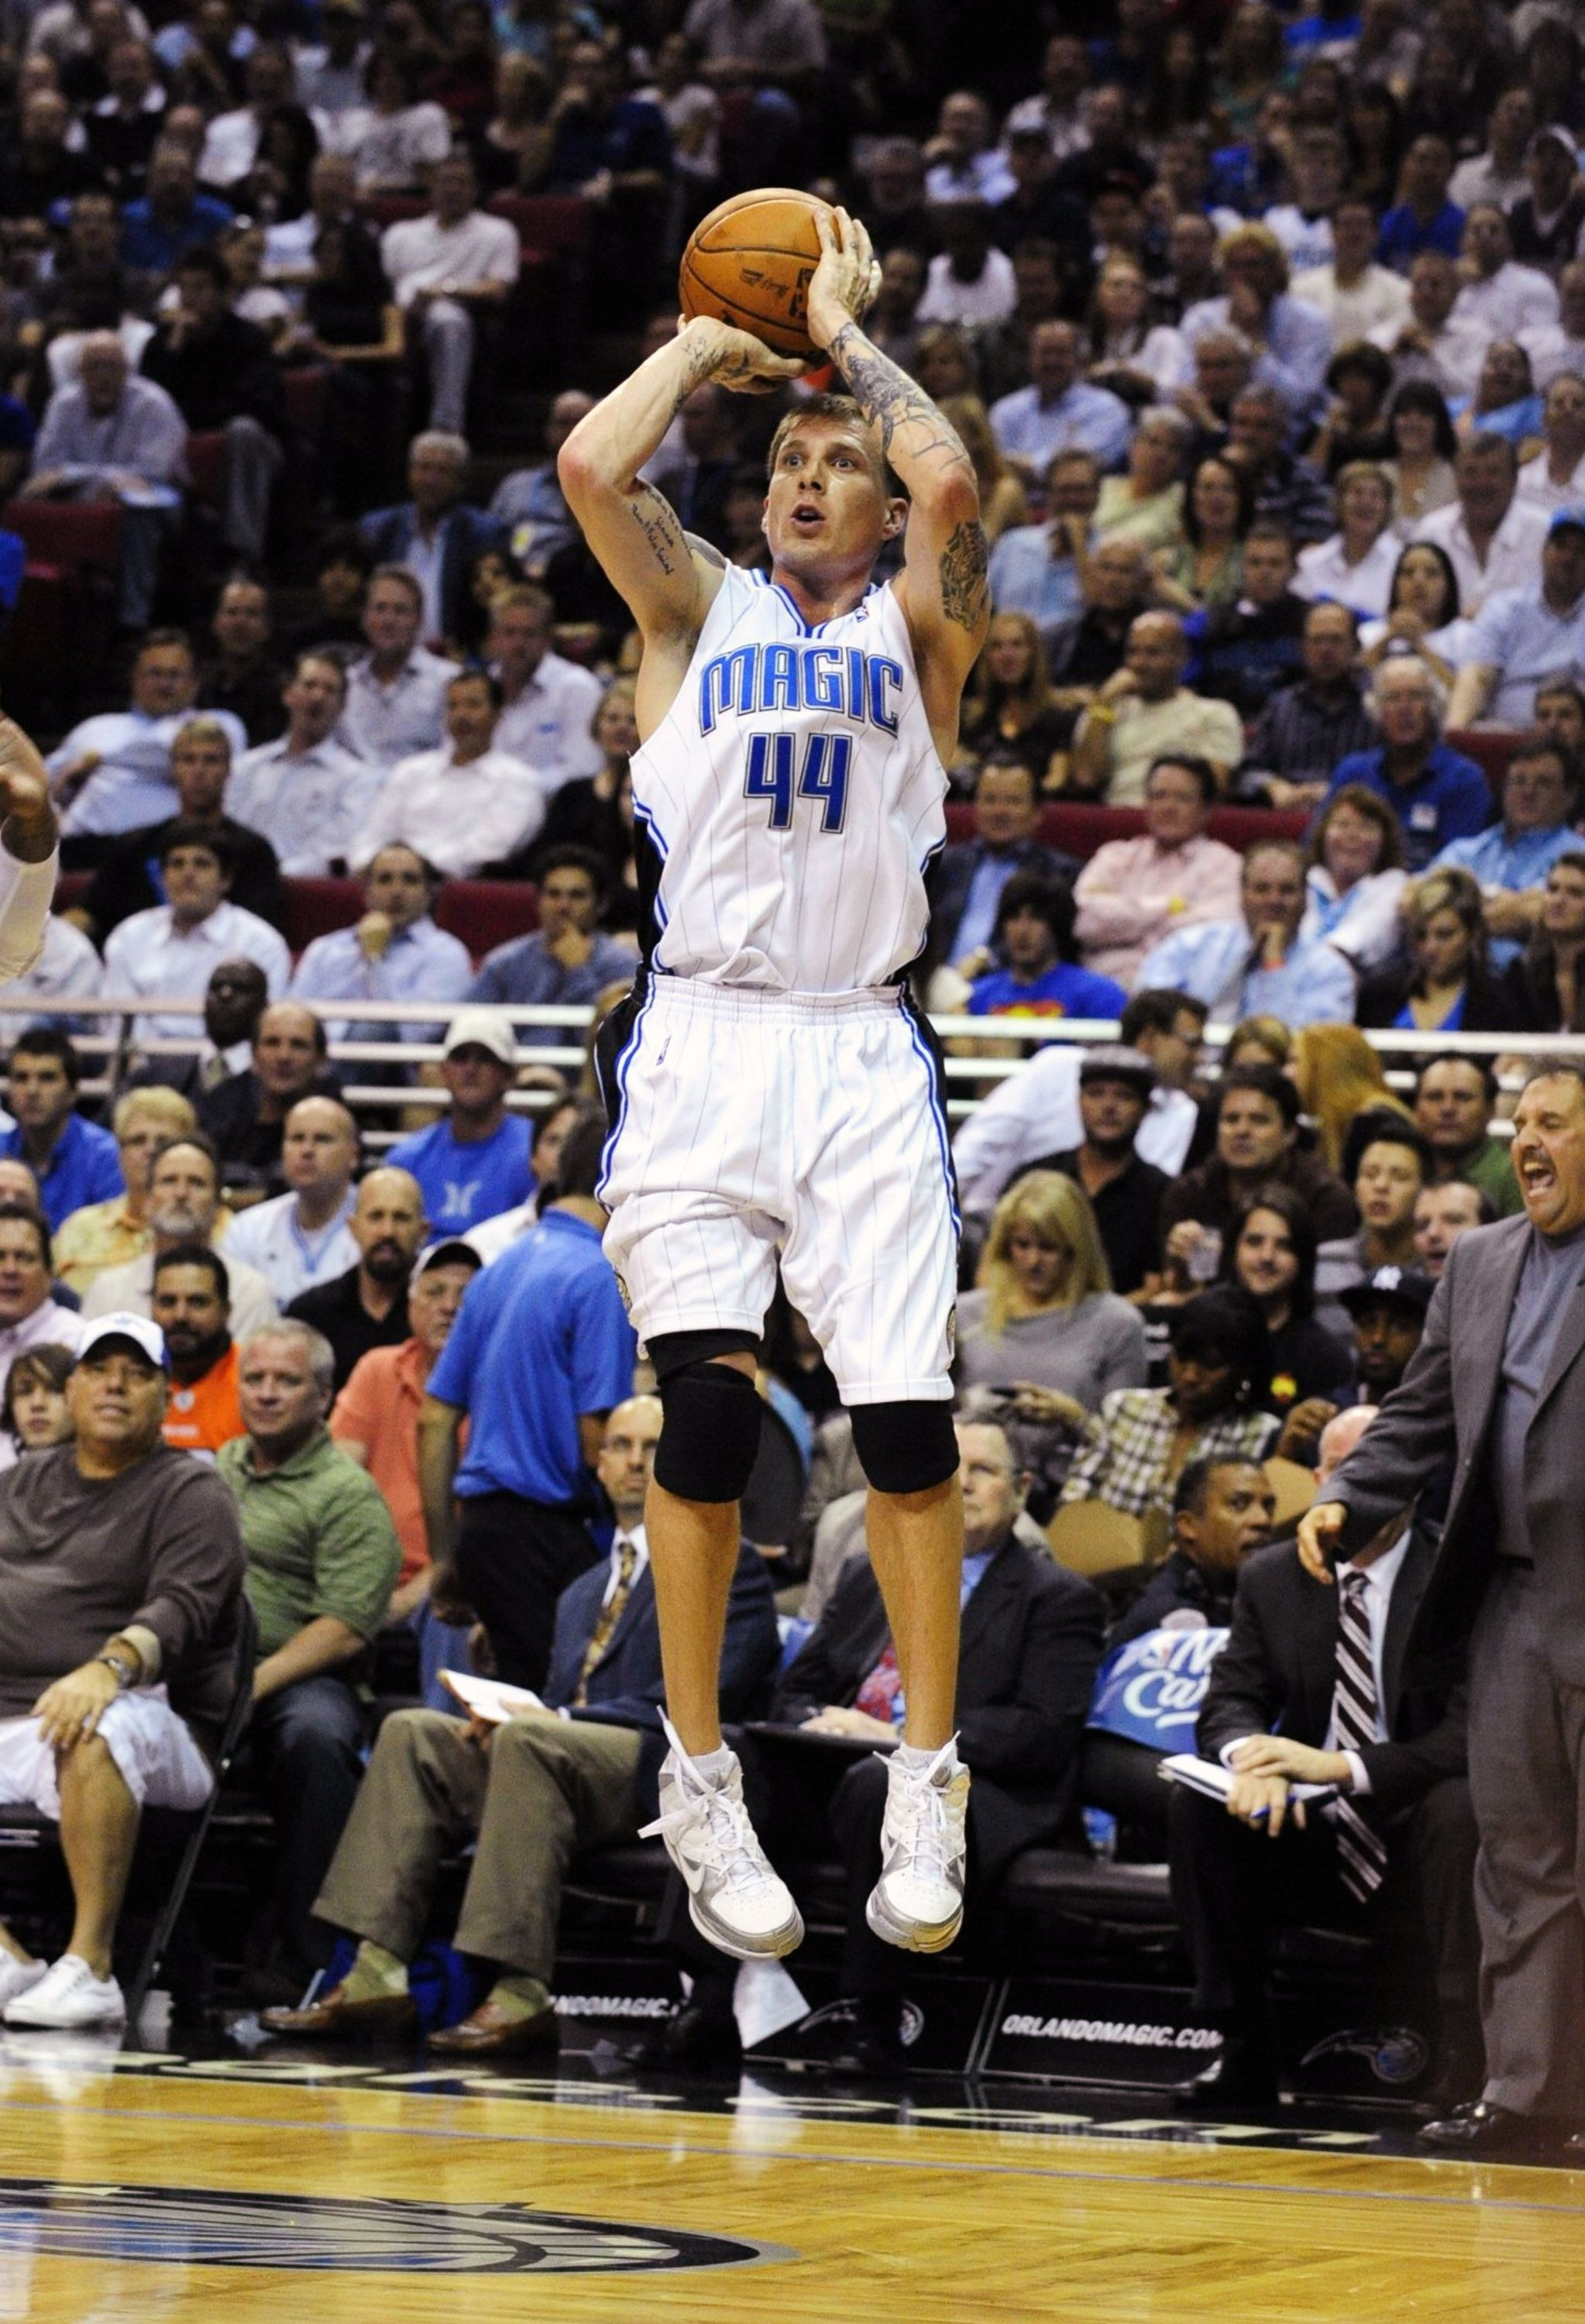 White Chocolate, Jason Williams | Deportistas | Pinterest | Jason ...